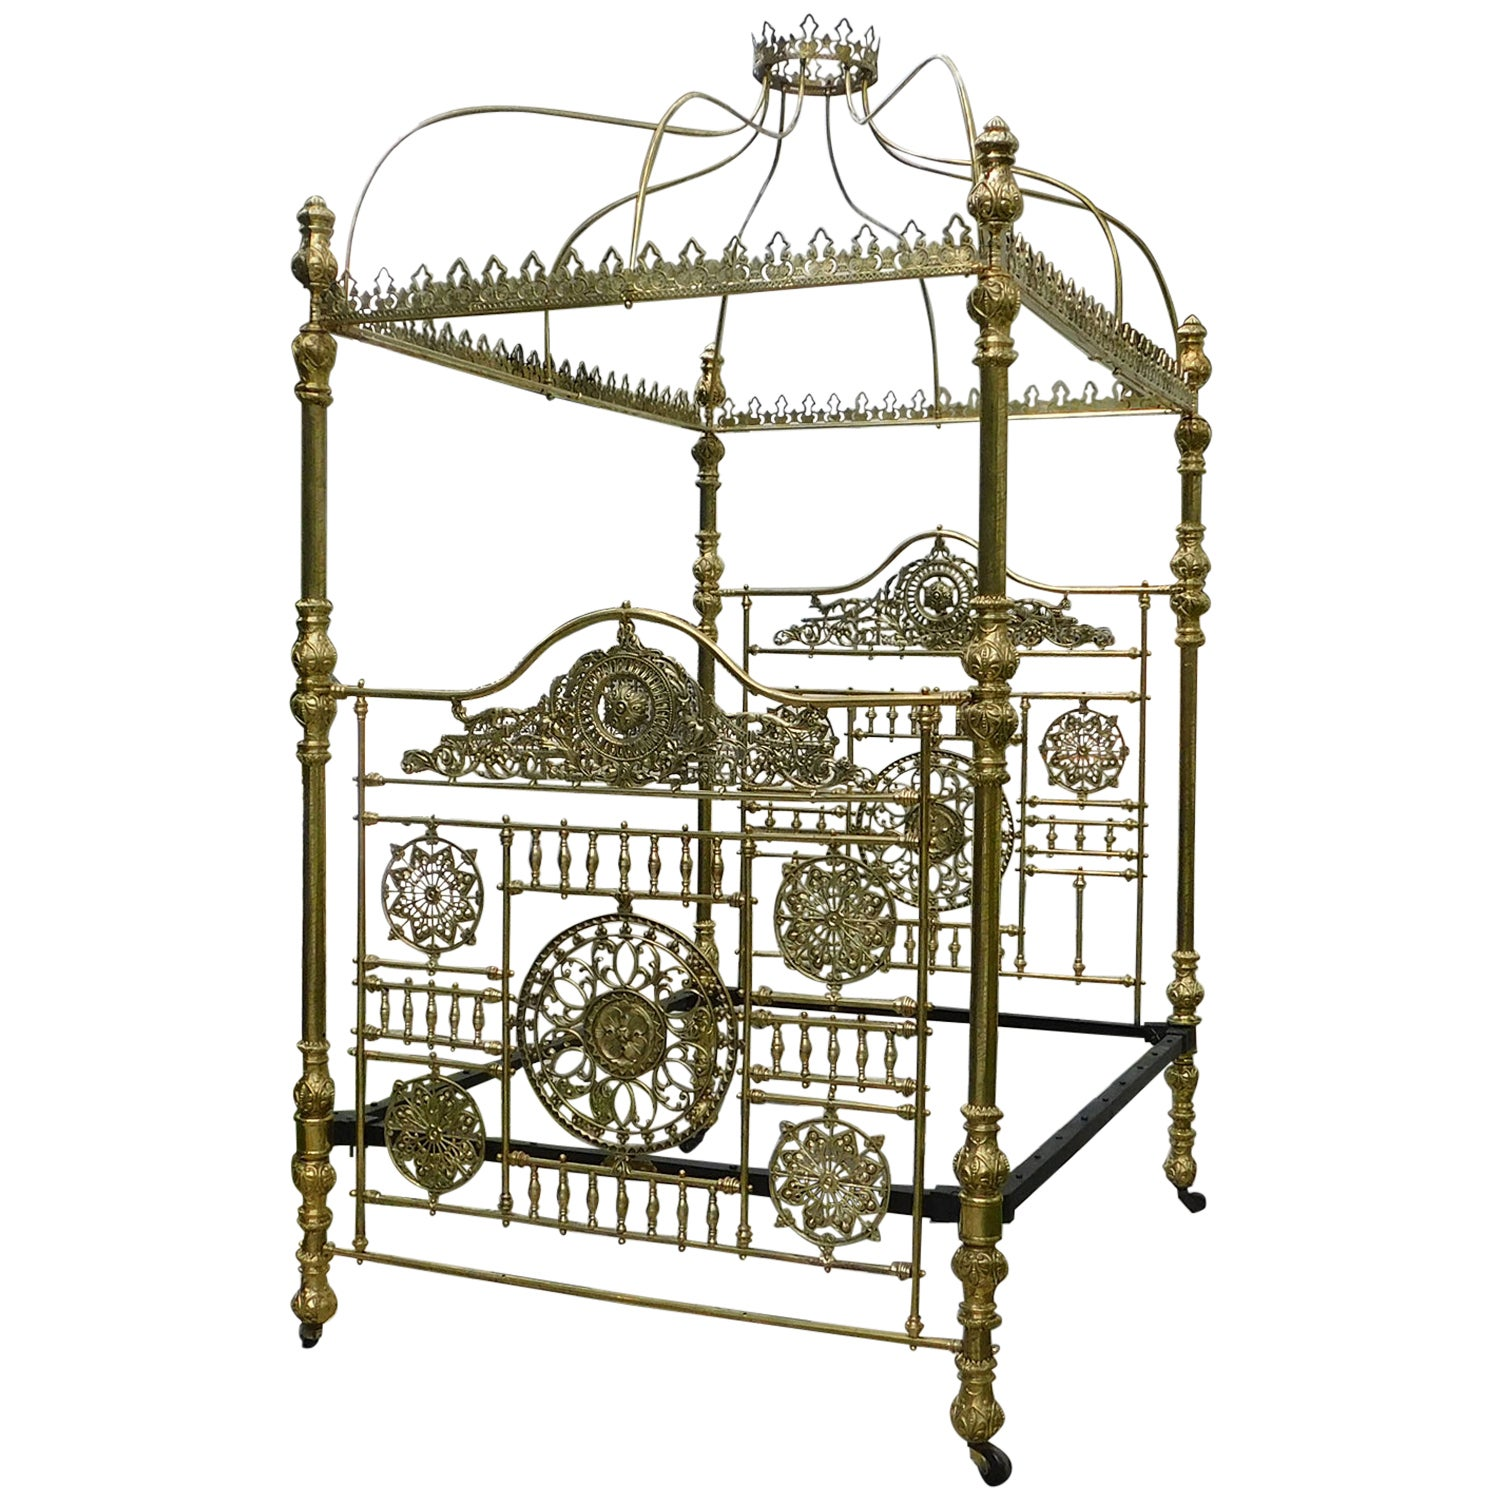 All Brass Crown and Canopy Four Poster Bed